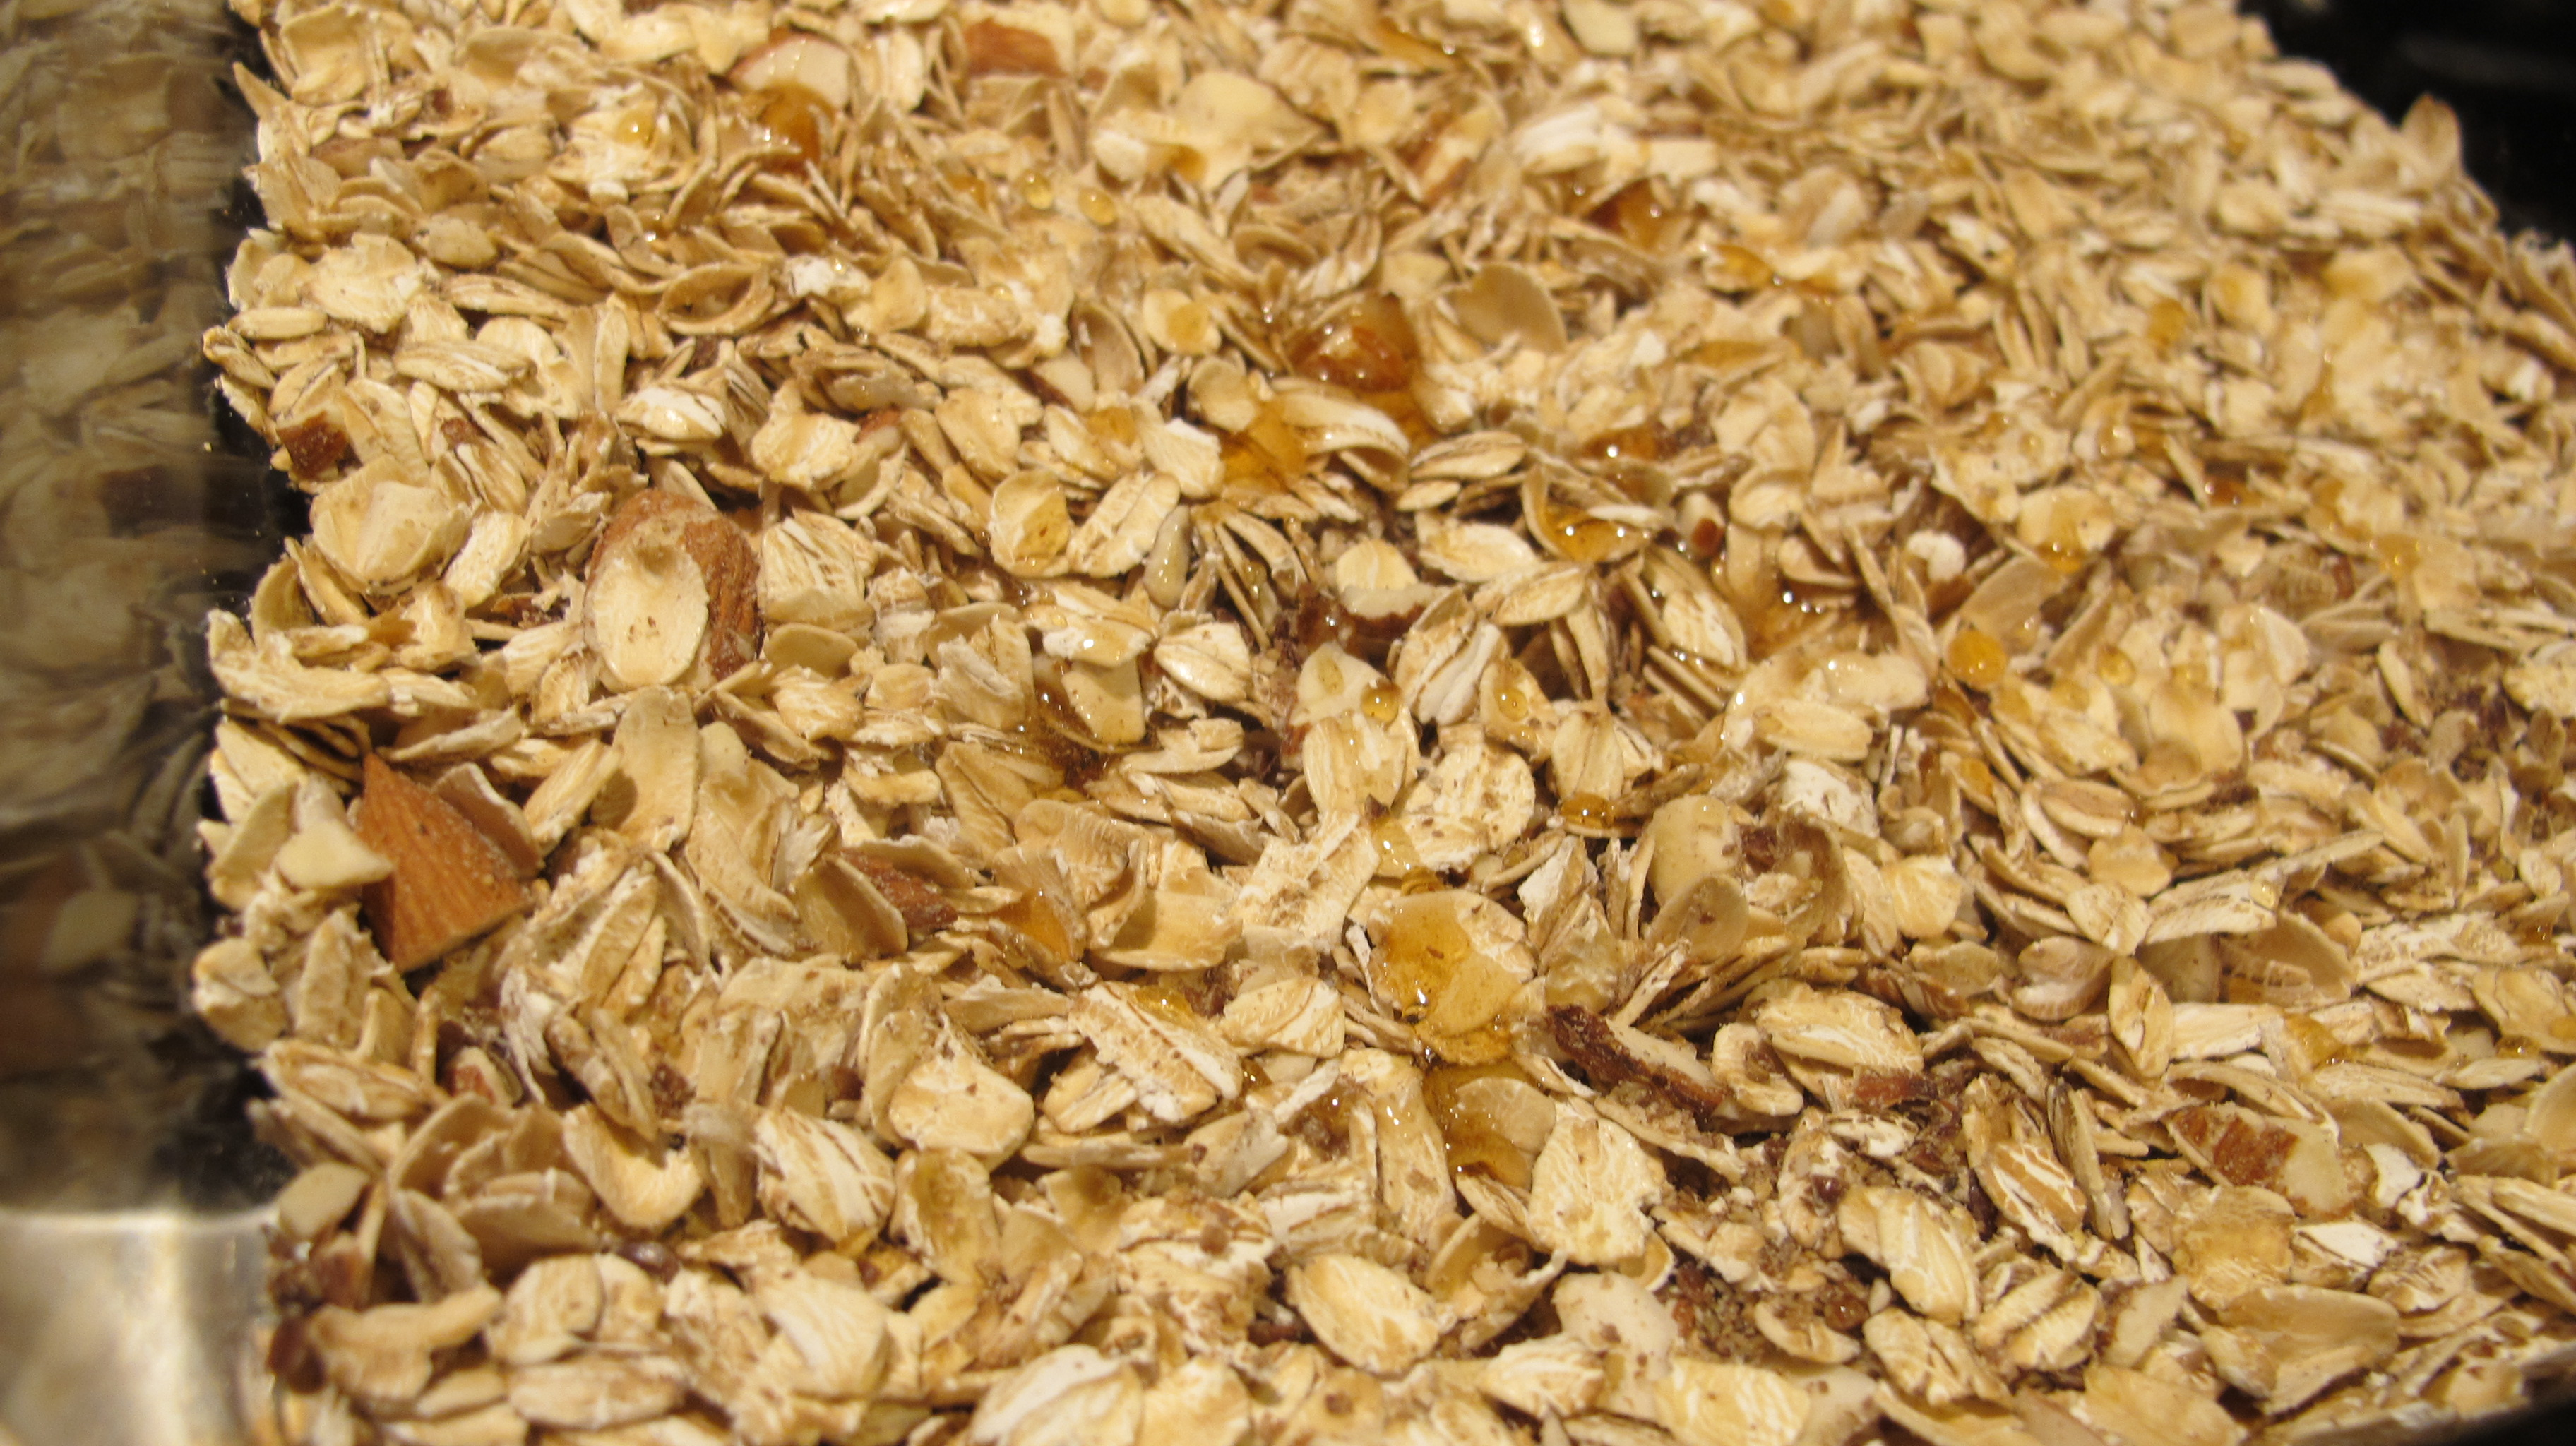 The honey mixture is drizzled over the muesli.